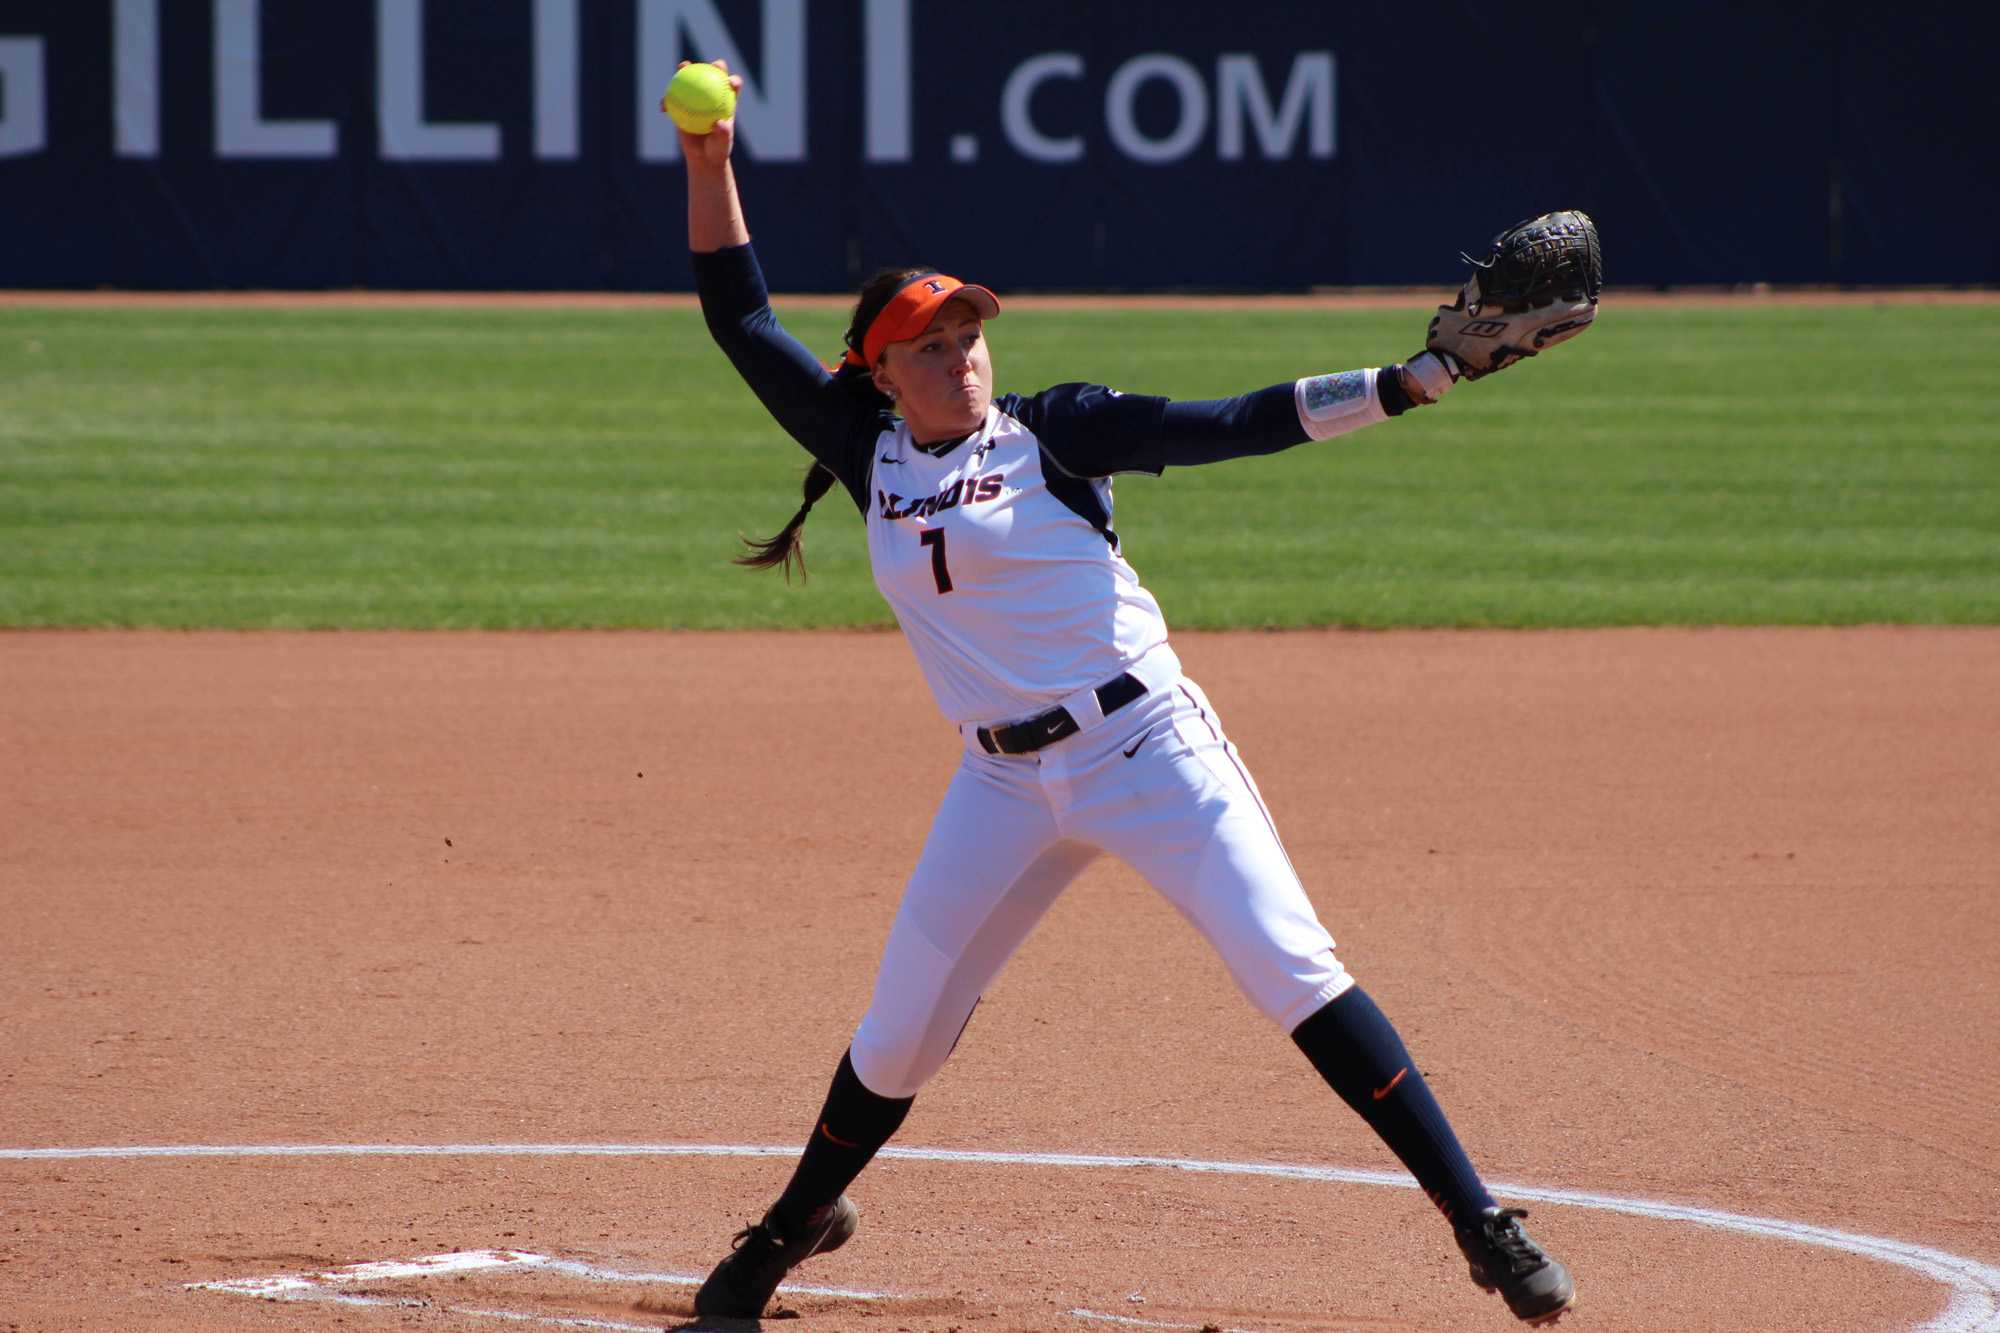 Illinois' Jade Vecvanags pitches in the game against Rutgers at Eichelberger Field on Sunday, Apr. 3, 2016